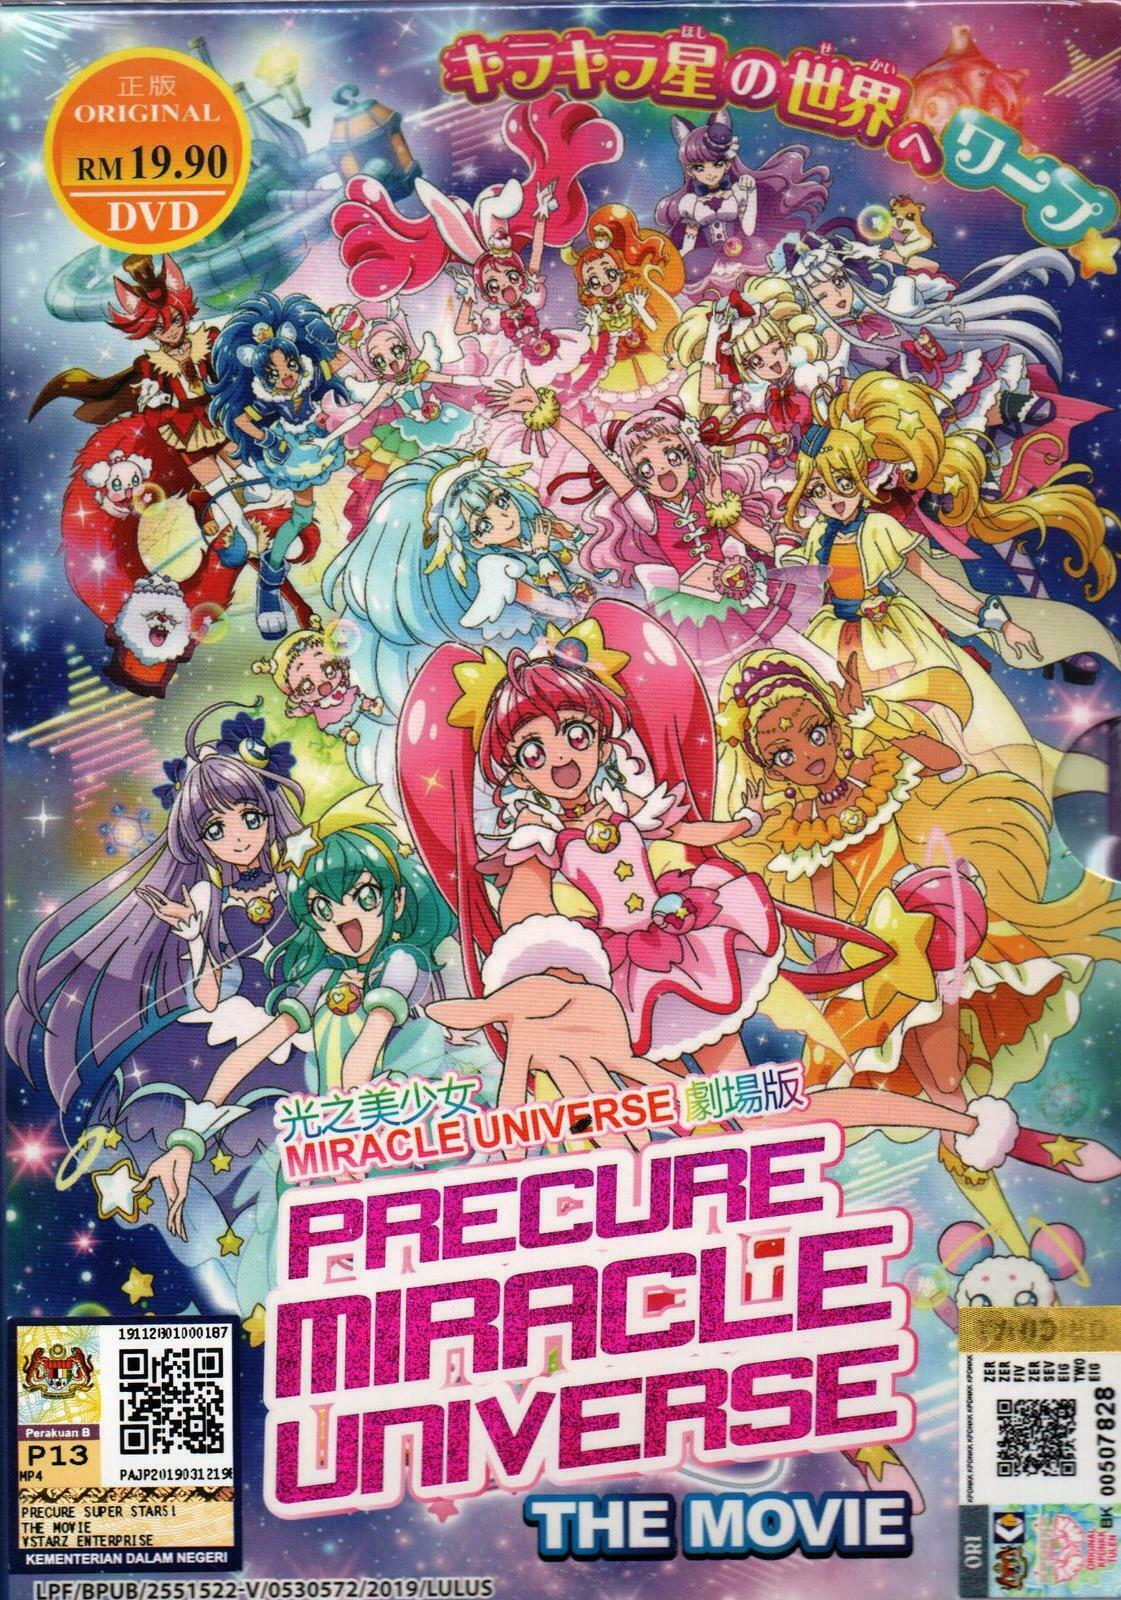 Precure Miracle Universe The Movie